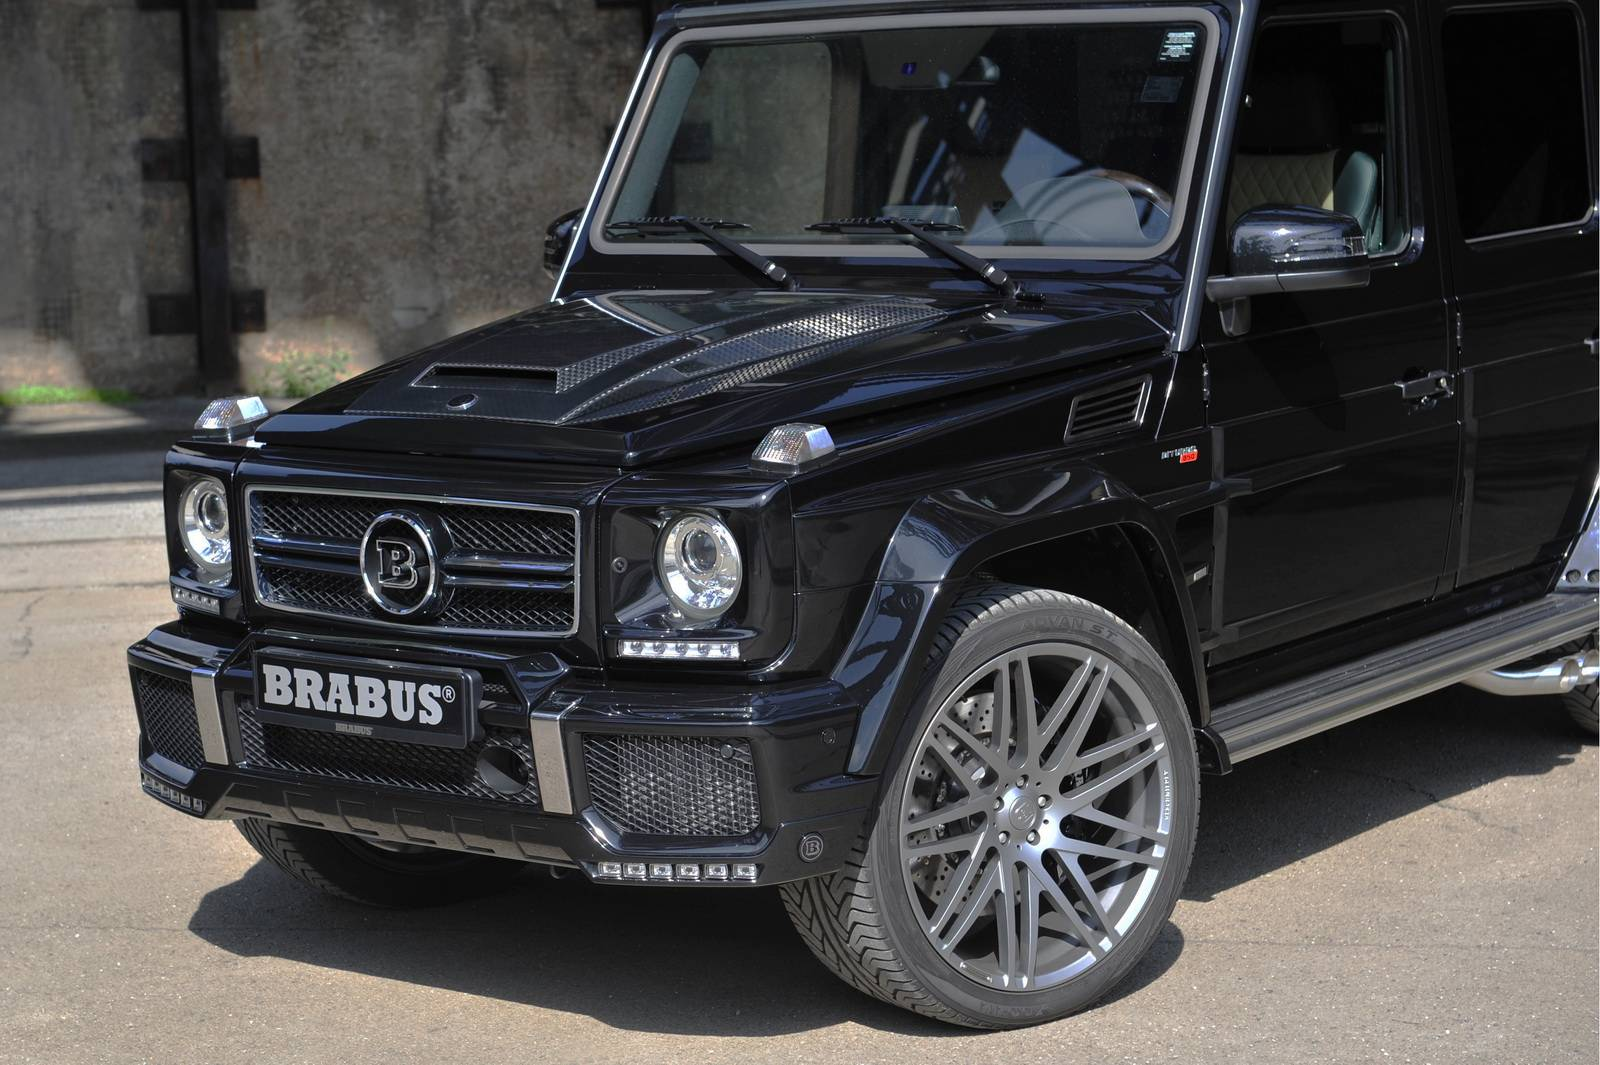 mercedes benz g63 brabus - photo #18